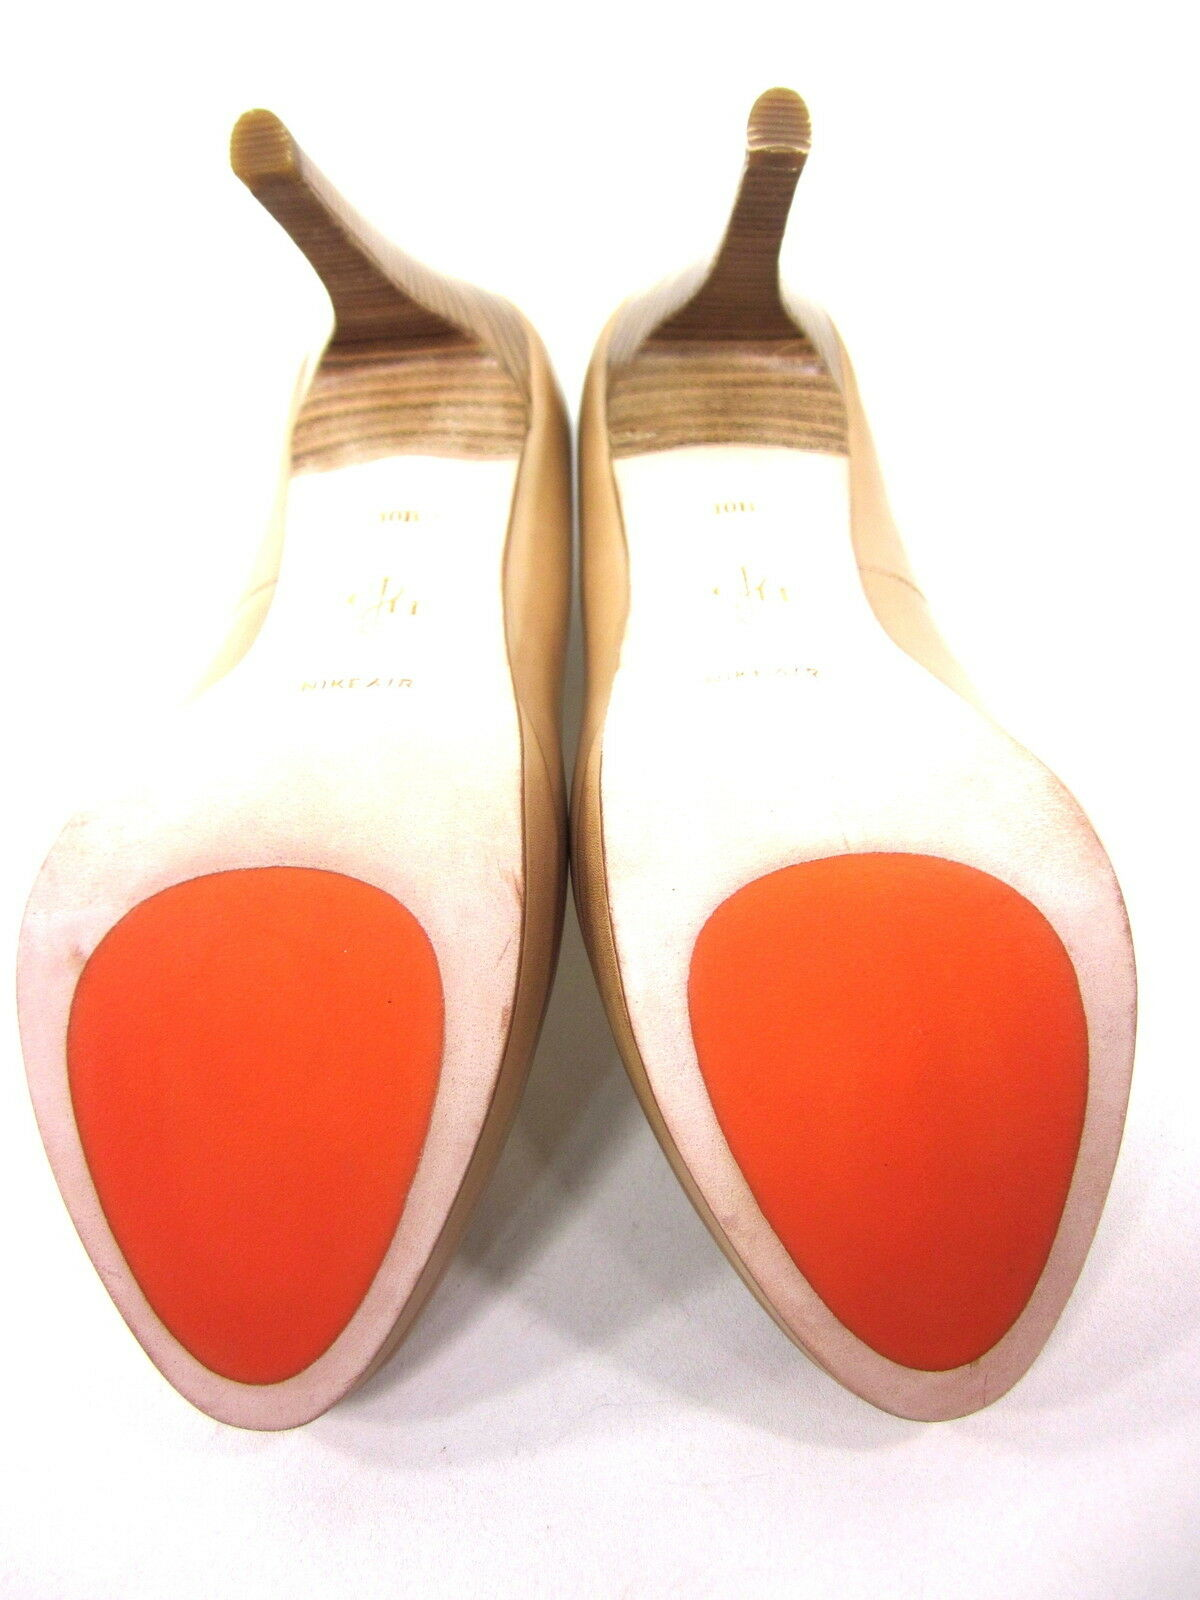 COLE HAAN, CHELSEA HIGH SANDSTONE PUMP, damen, SANDSTONE HIGH US Größe 10 B, EUR 40, NEW IN BOX 5bff75